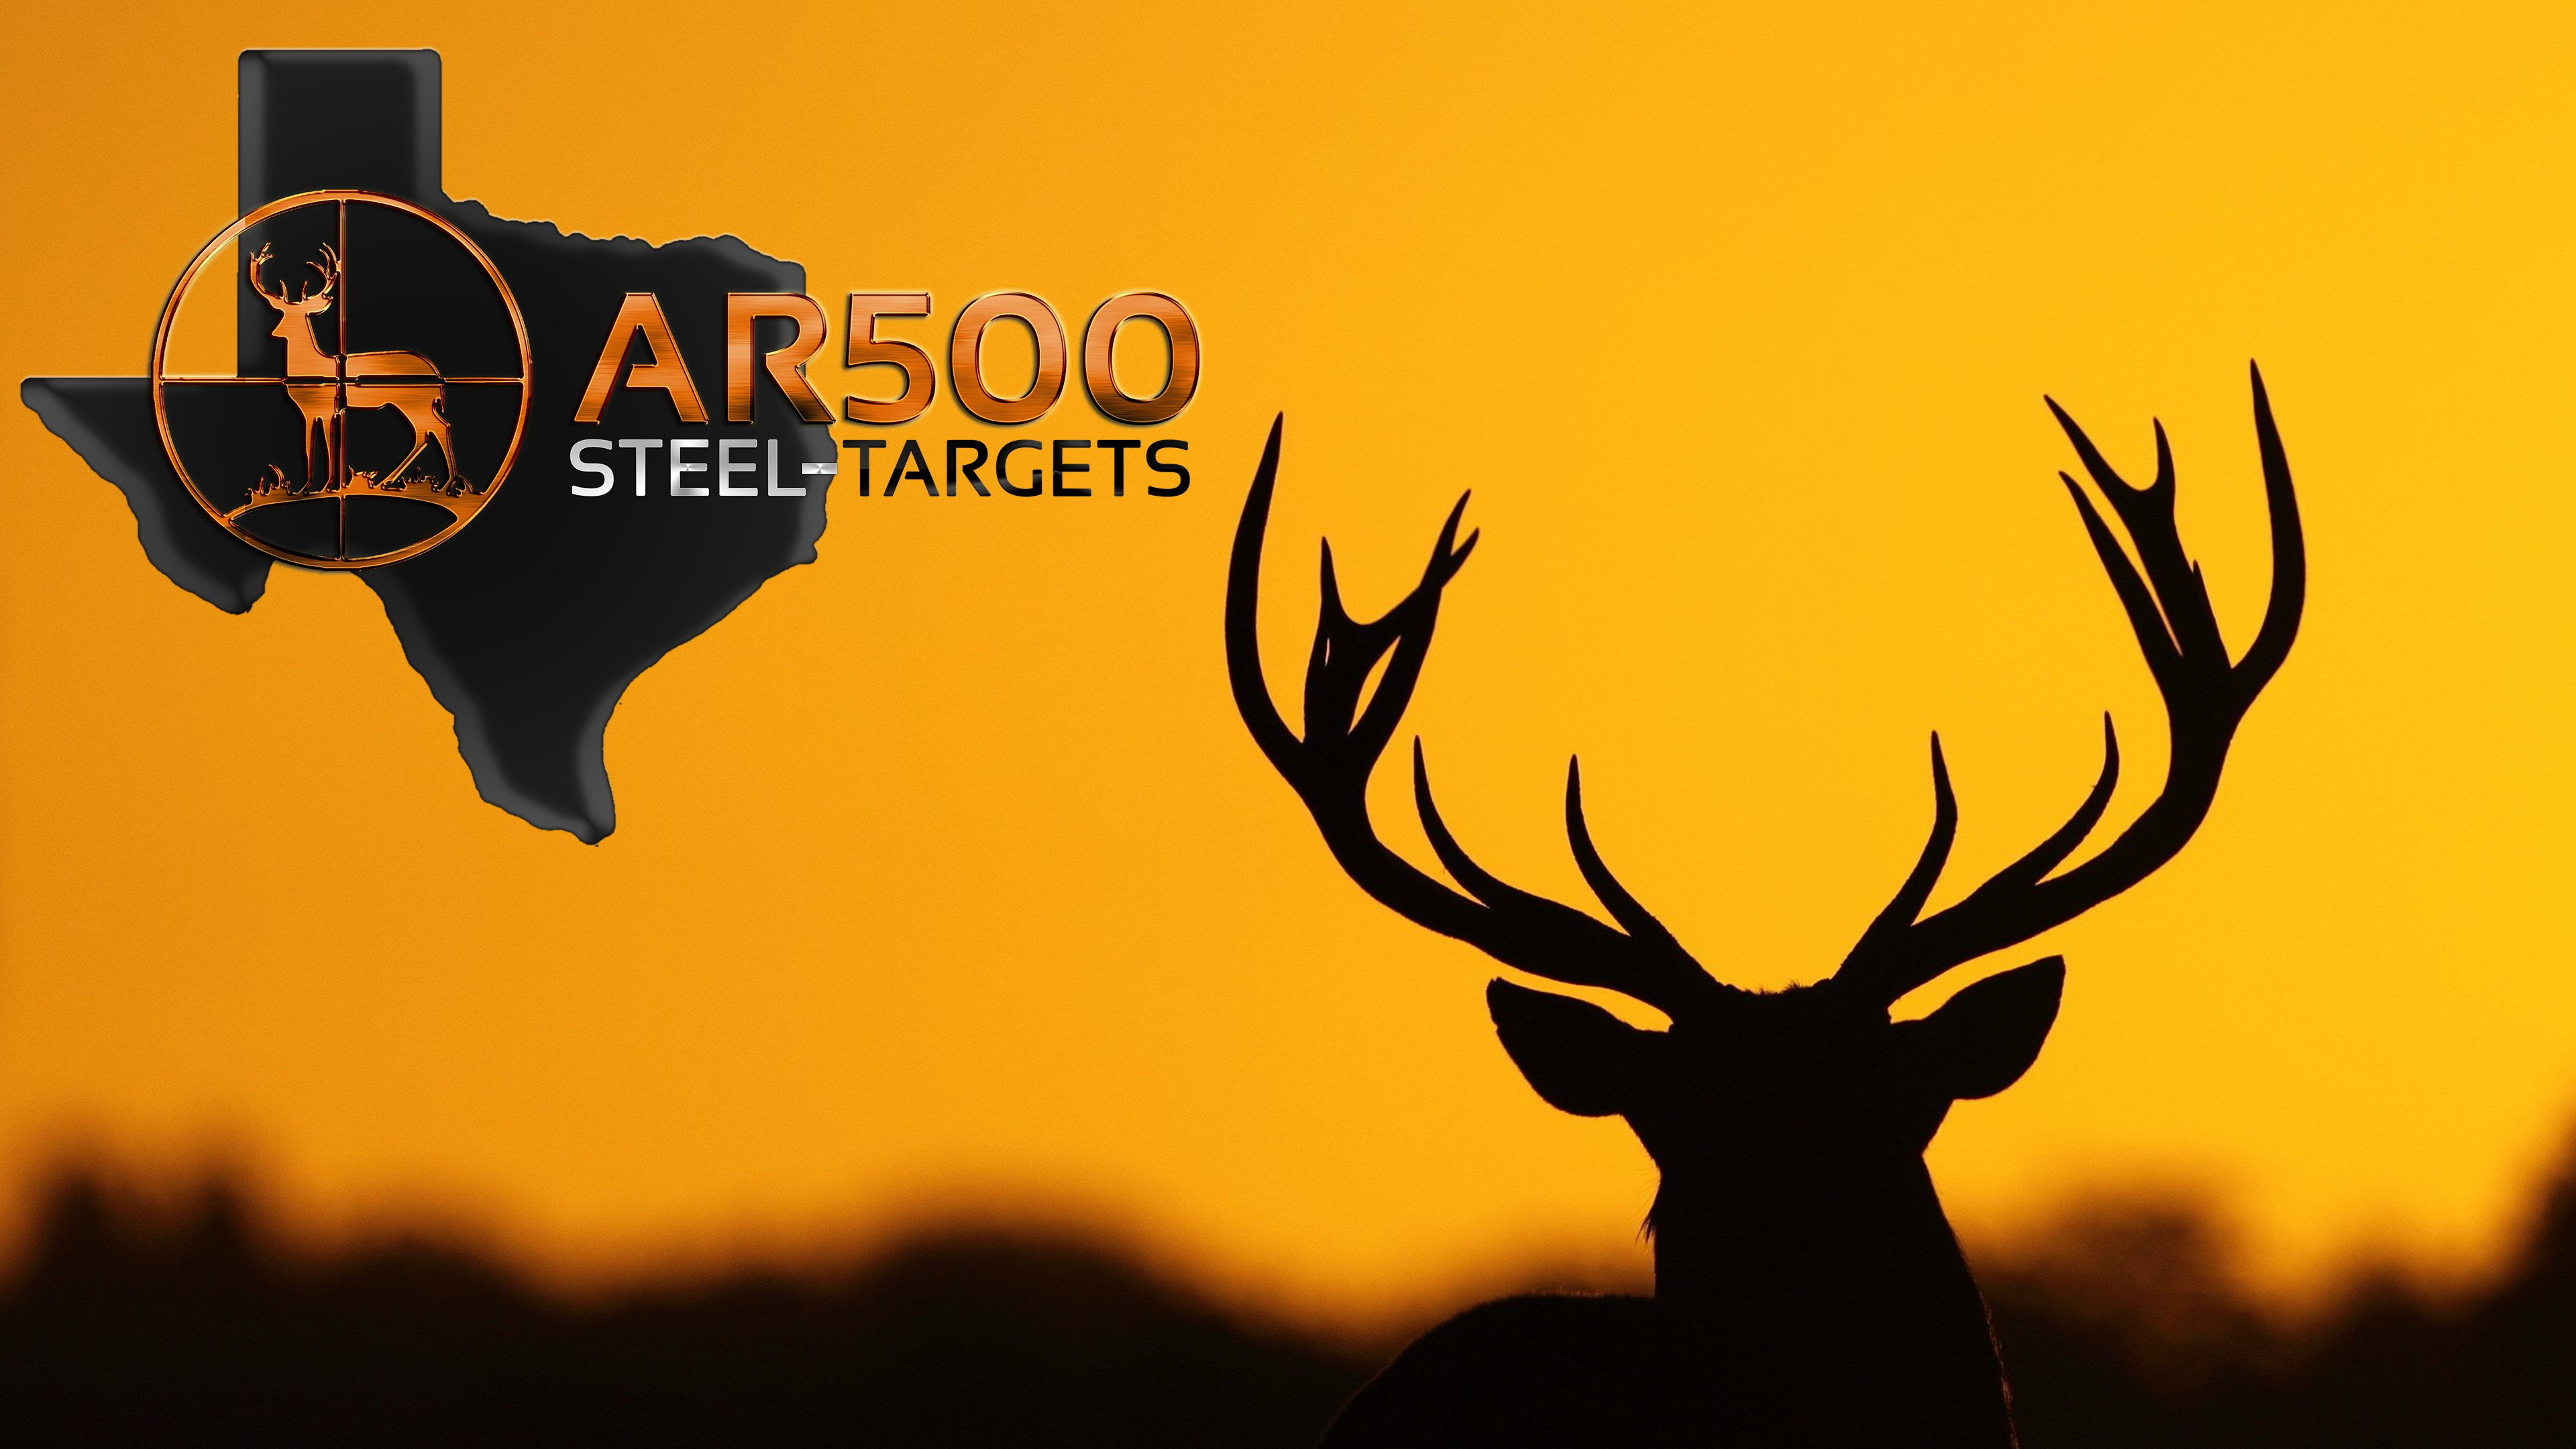 What are AR500 Steel Targets? 1